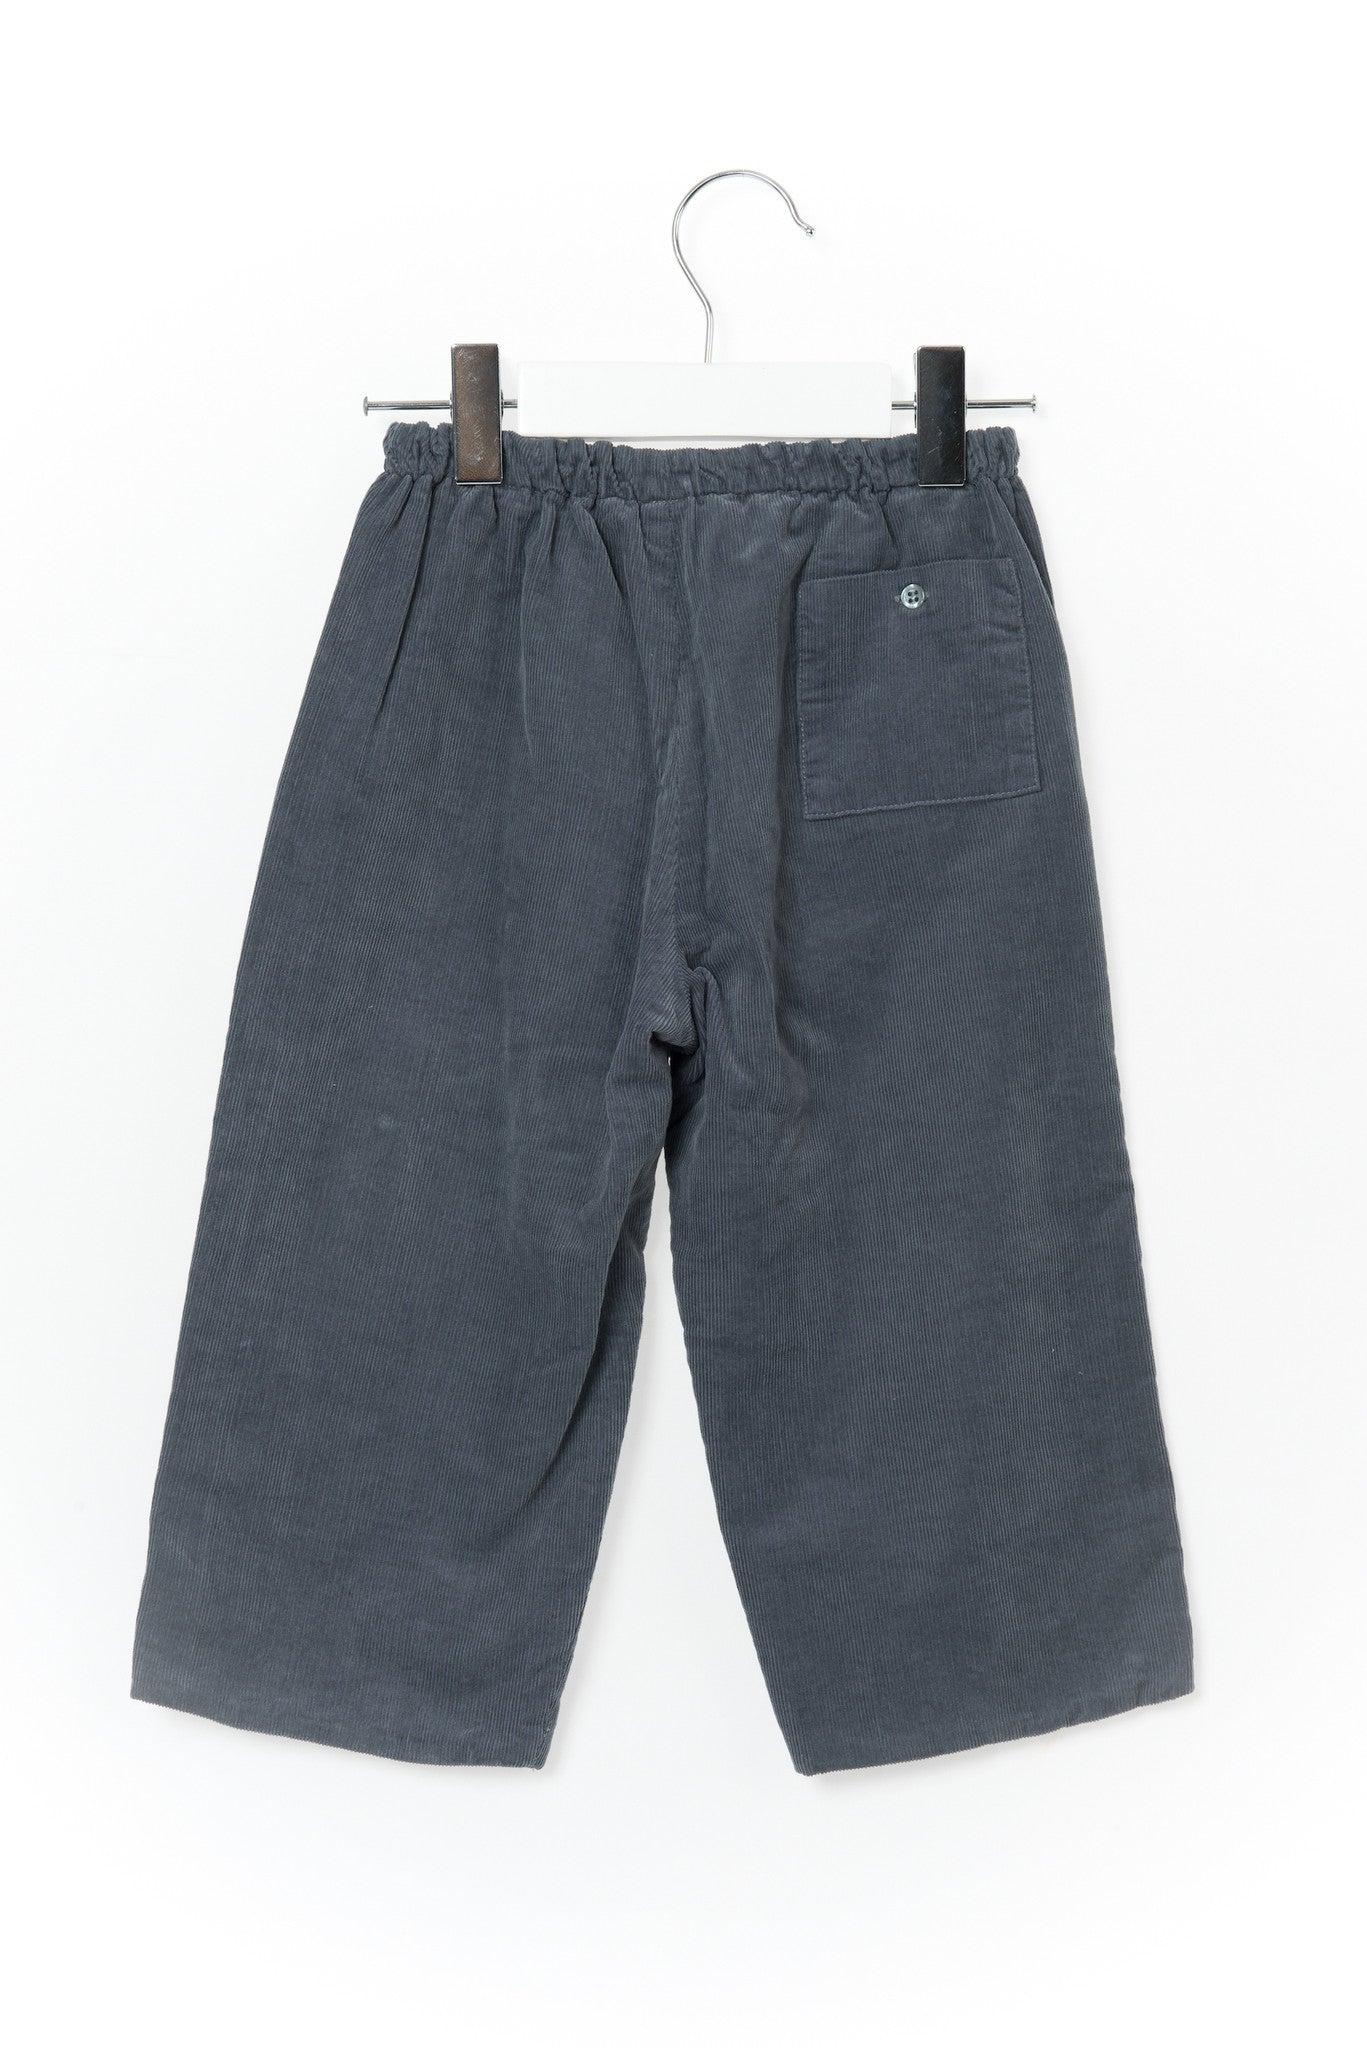 Pants 2T, Bonpoint at Retykle - Online Baby & Kids Clothing Up to 90% Off